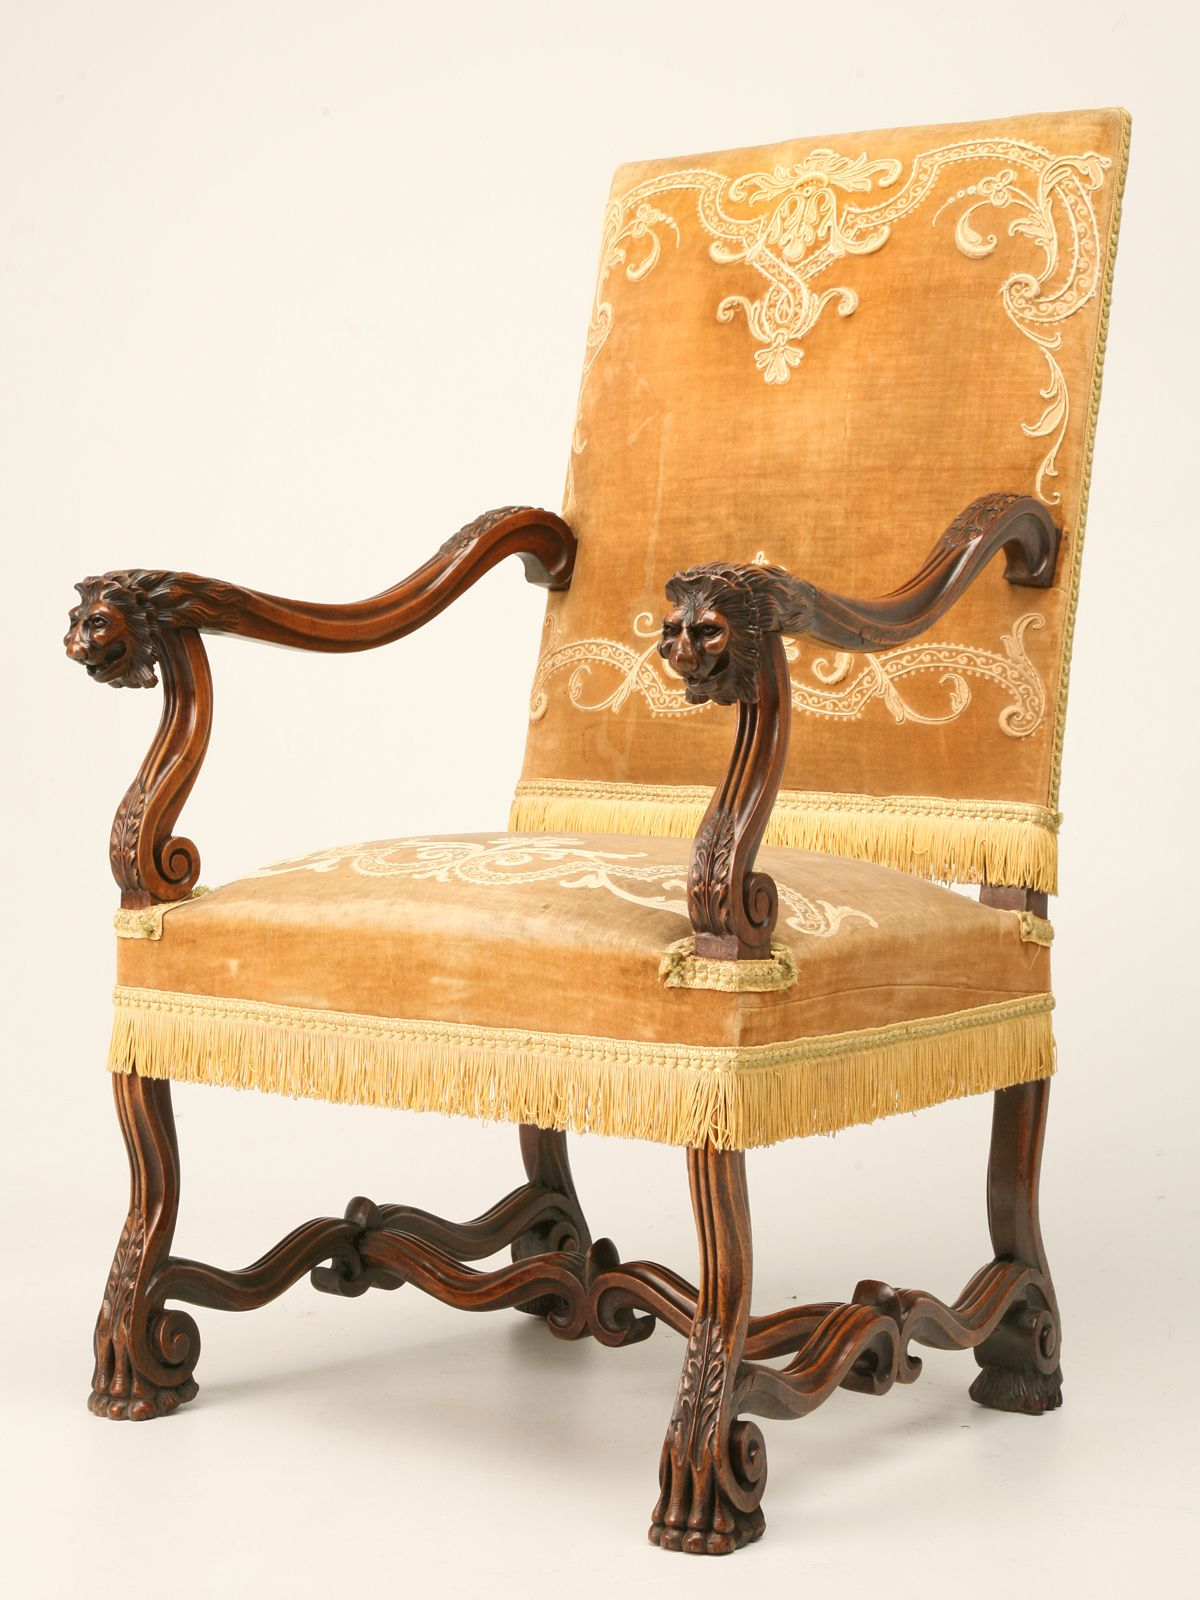 Antique Walnut Throne Chair In The Louis XIII Style. Beautifully Hand Carved  With Lion Head Detail, Fleur De Lys Inspired Volute H Stretcher And Paw  Feet.